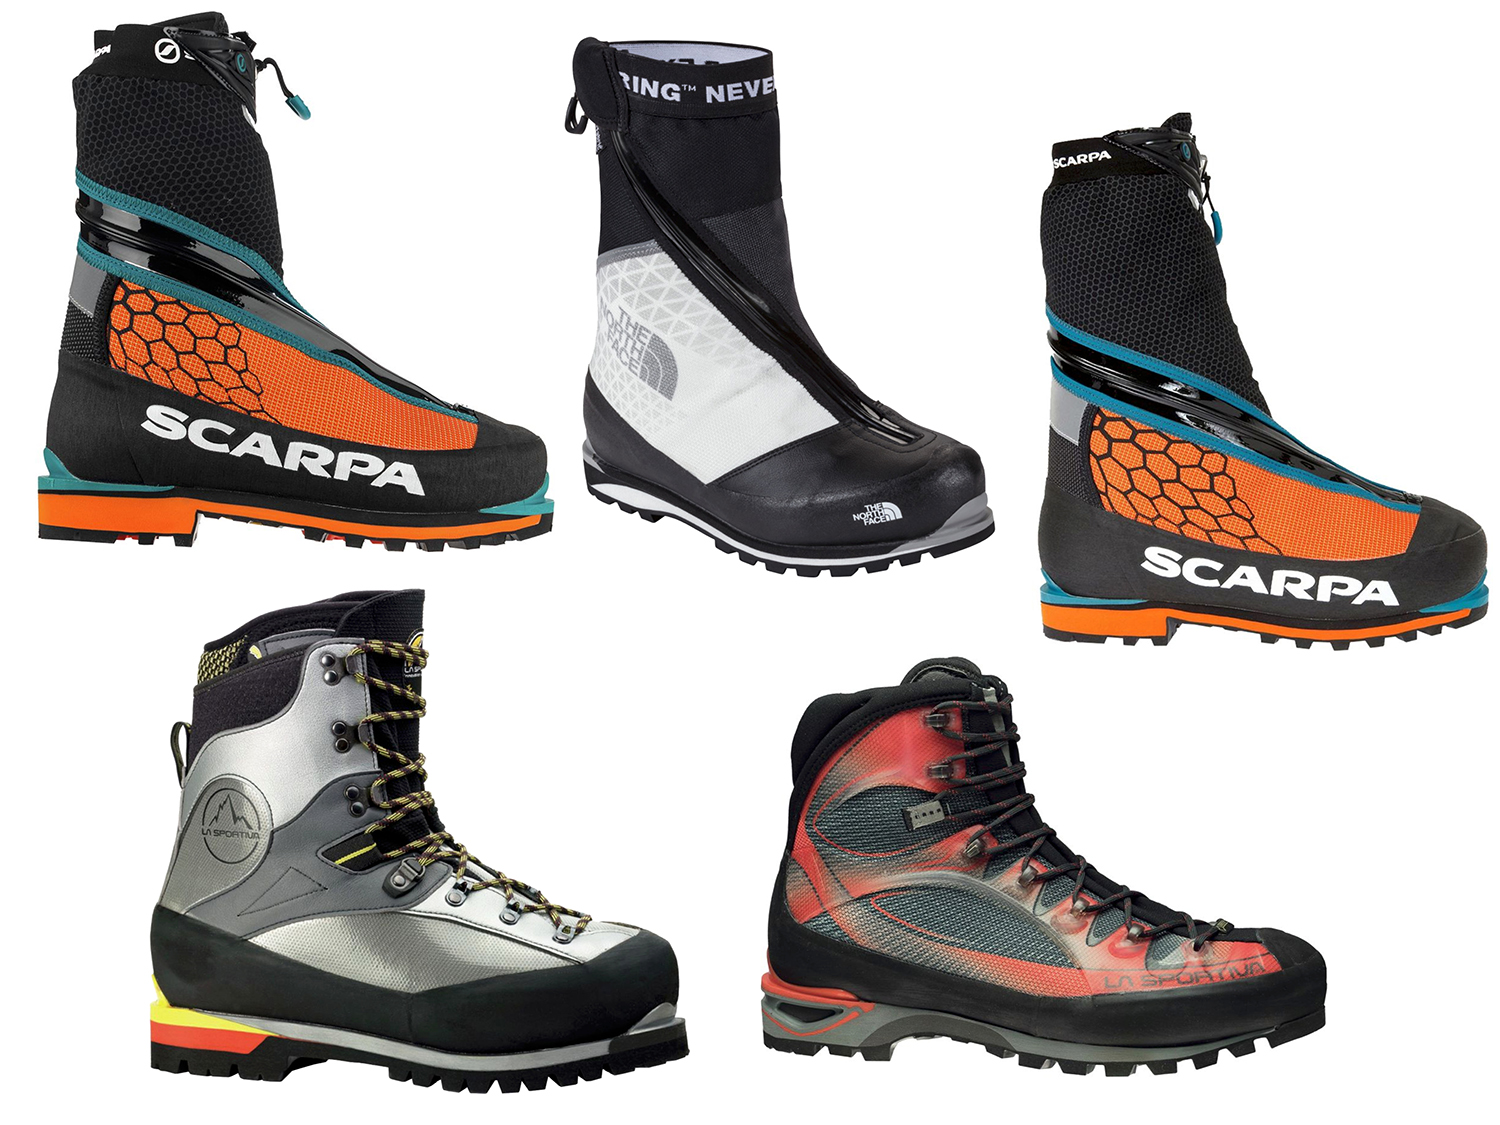 July 4 climbing gear sale ice and mountaineering boots